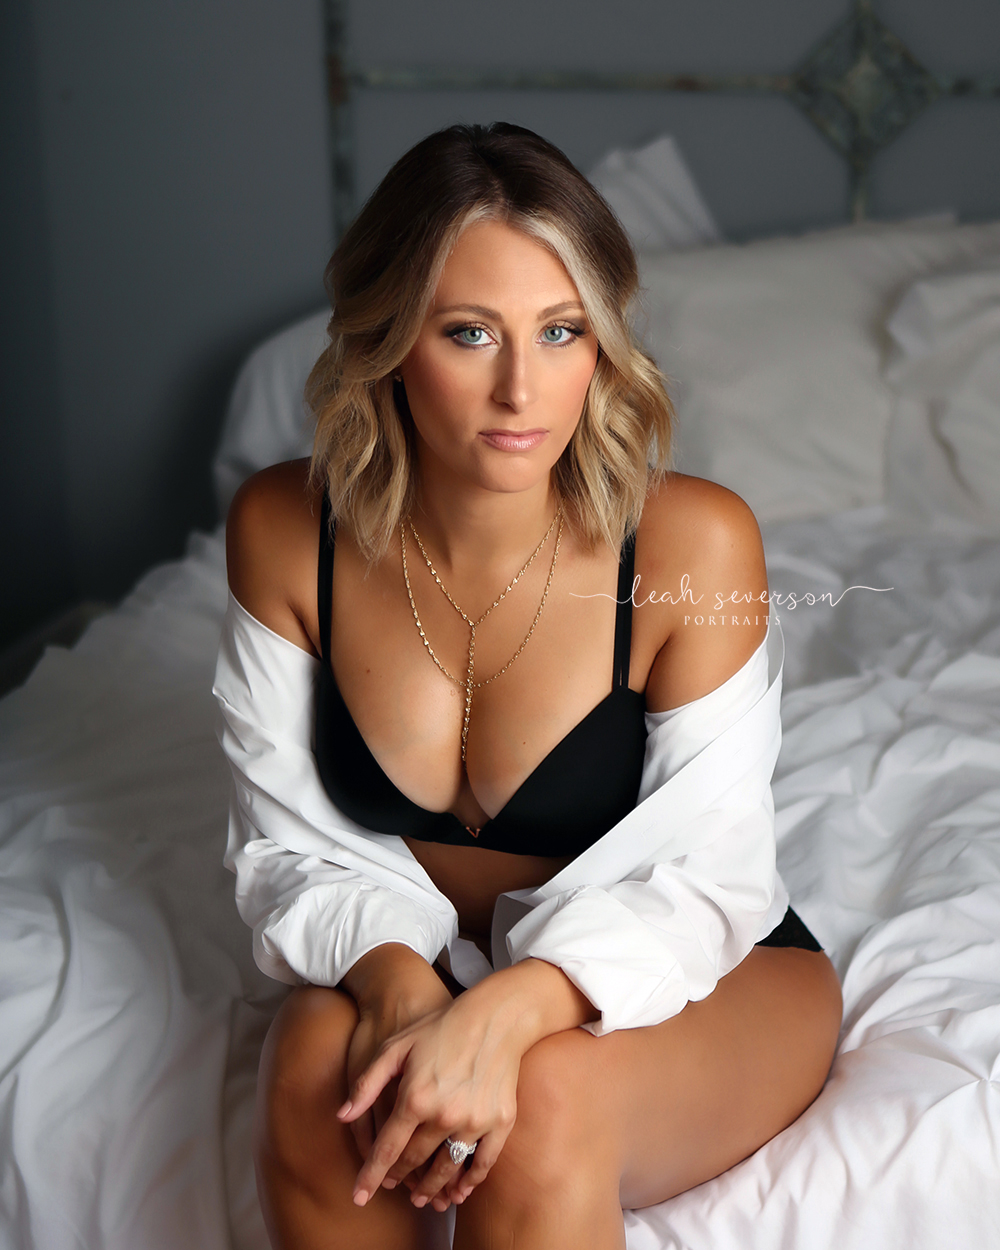 boudoir photoshoot indianapolis